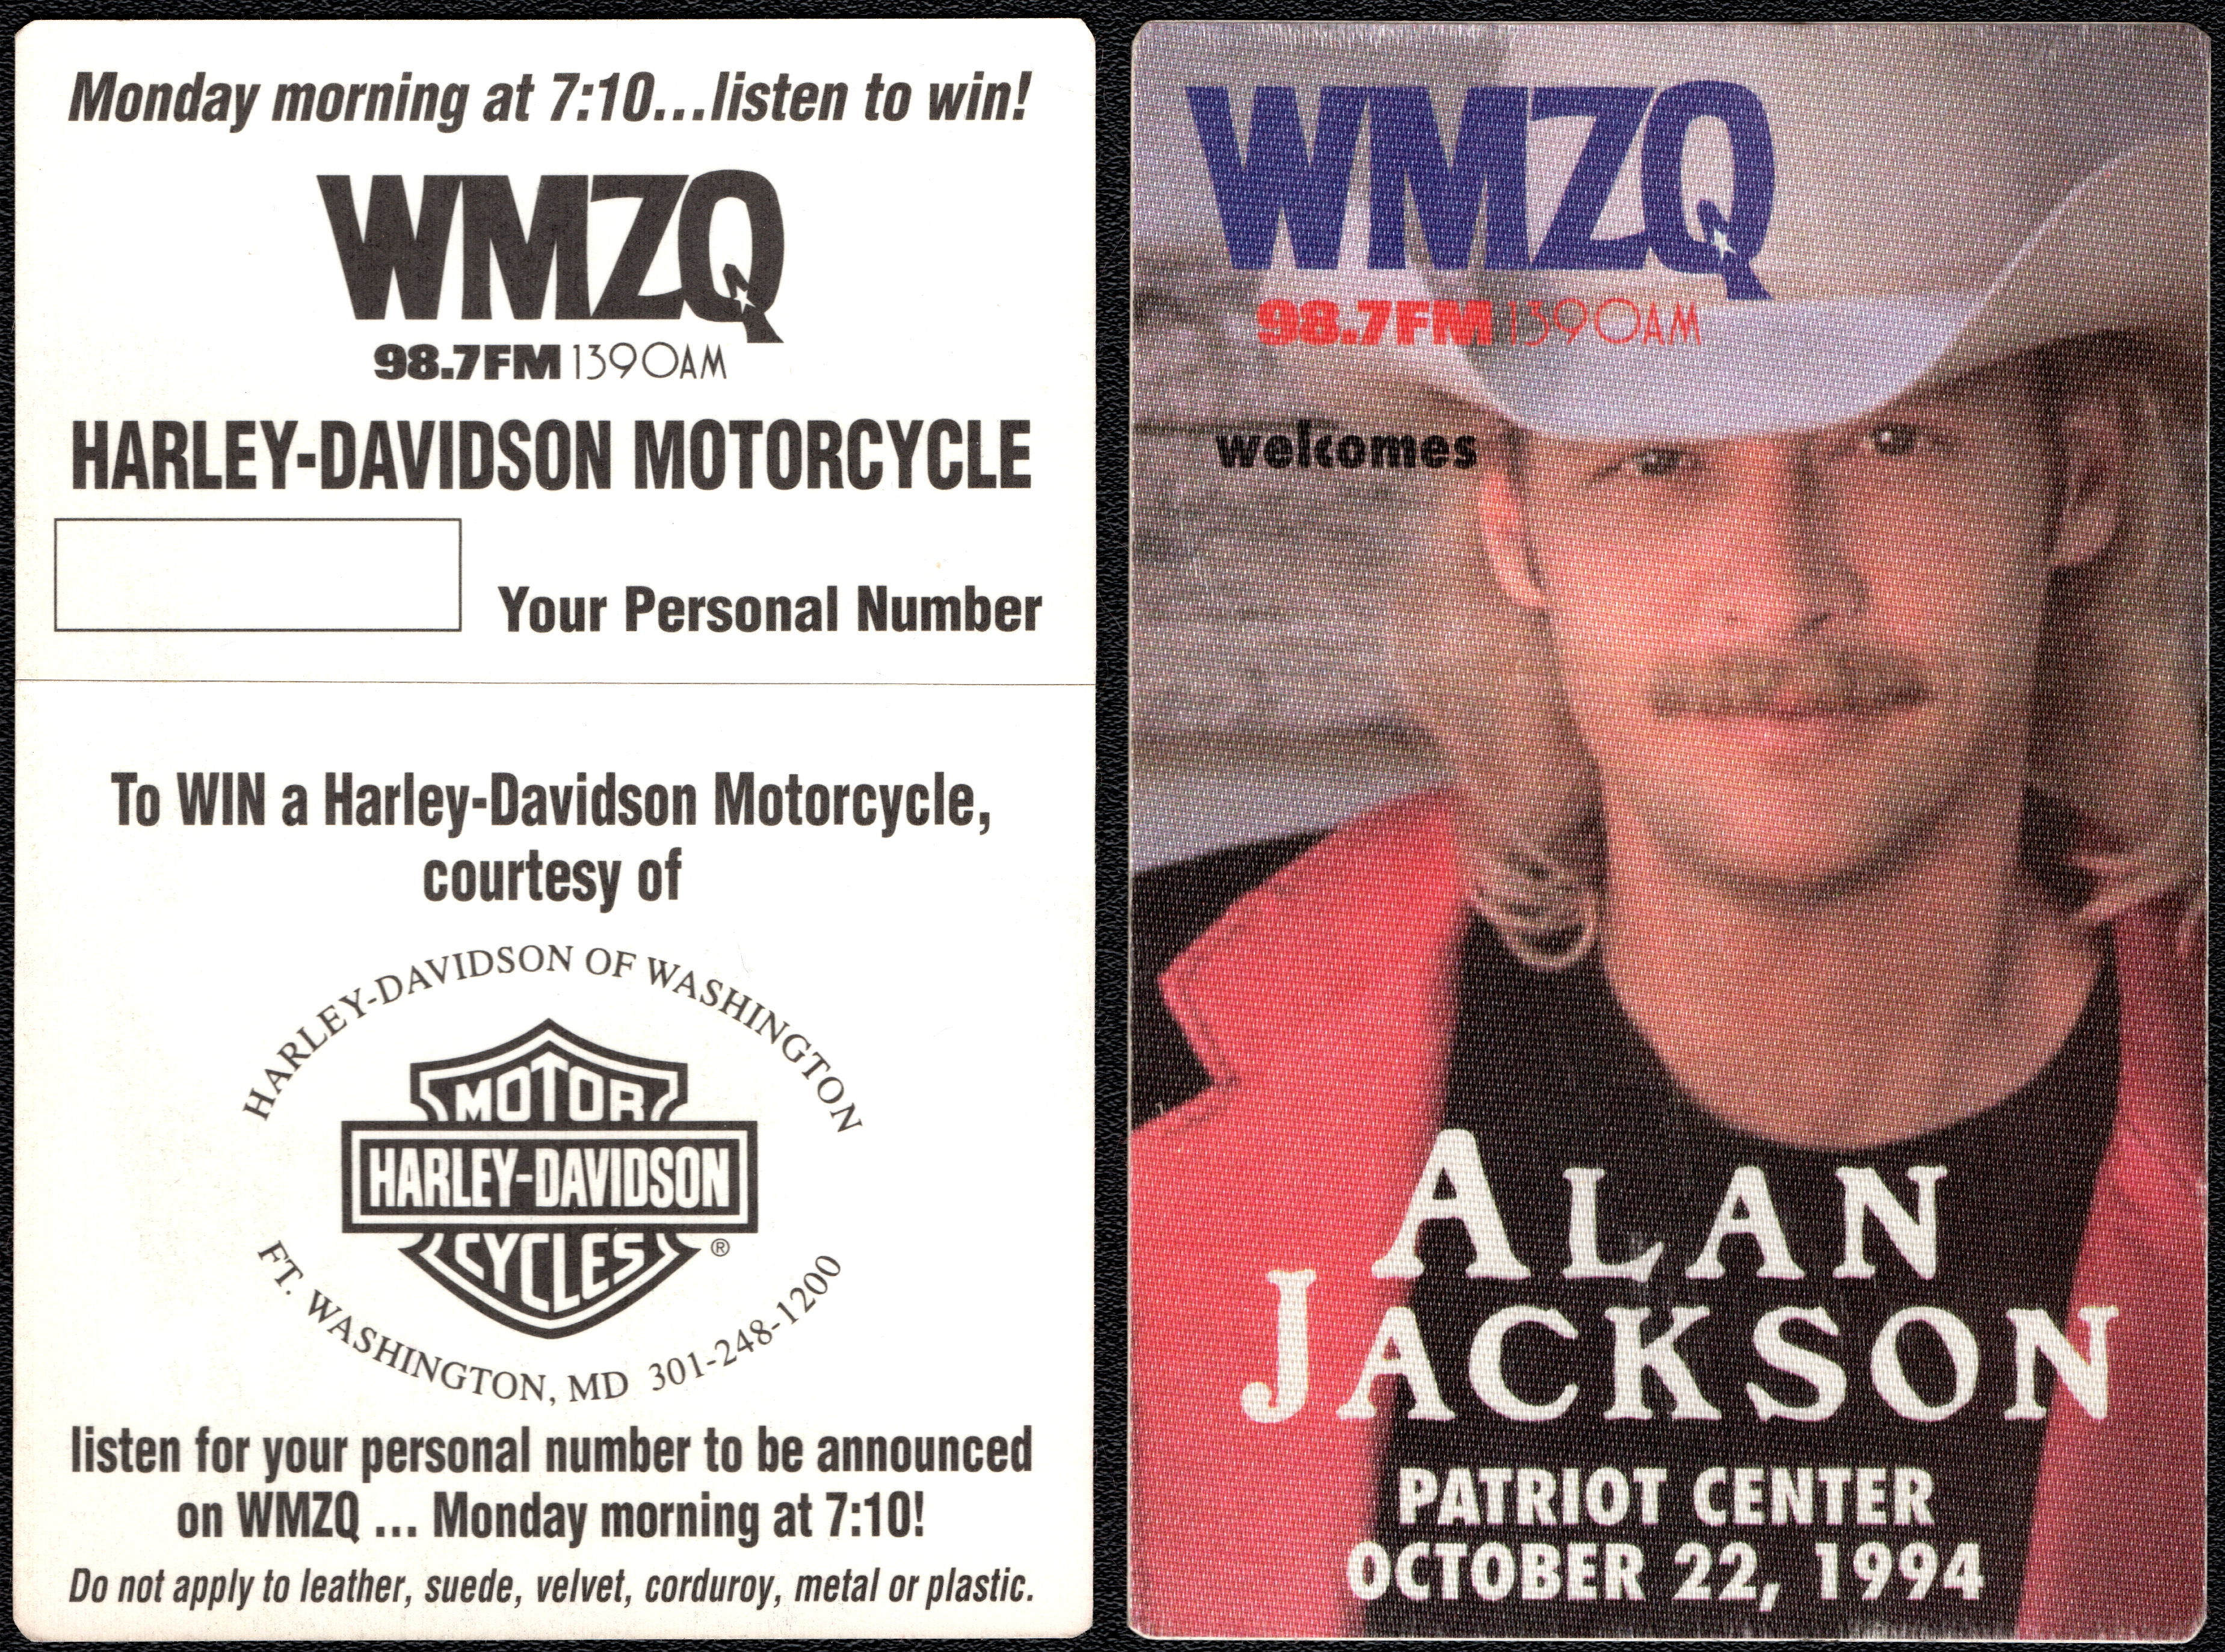 ##MUSICBP0522 - Alan Jackson OTTO Backstage Pass from the concert at the Patriot Center